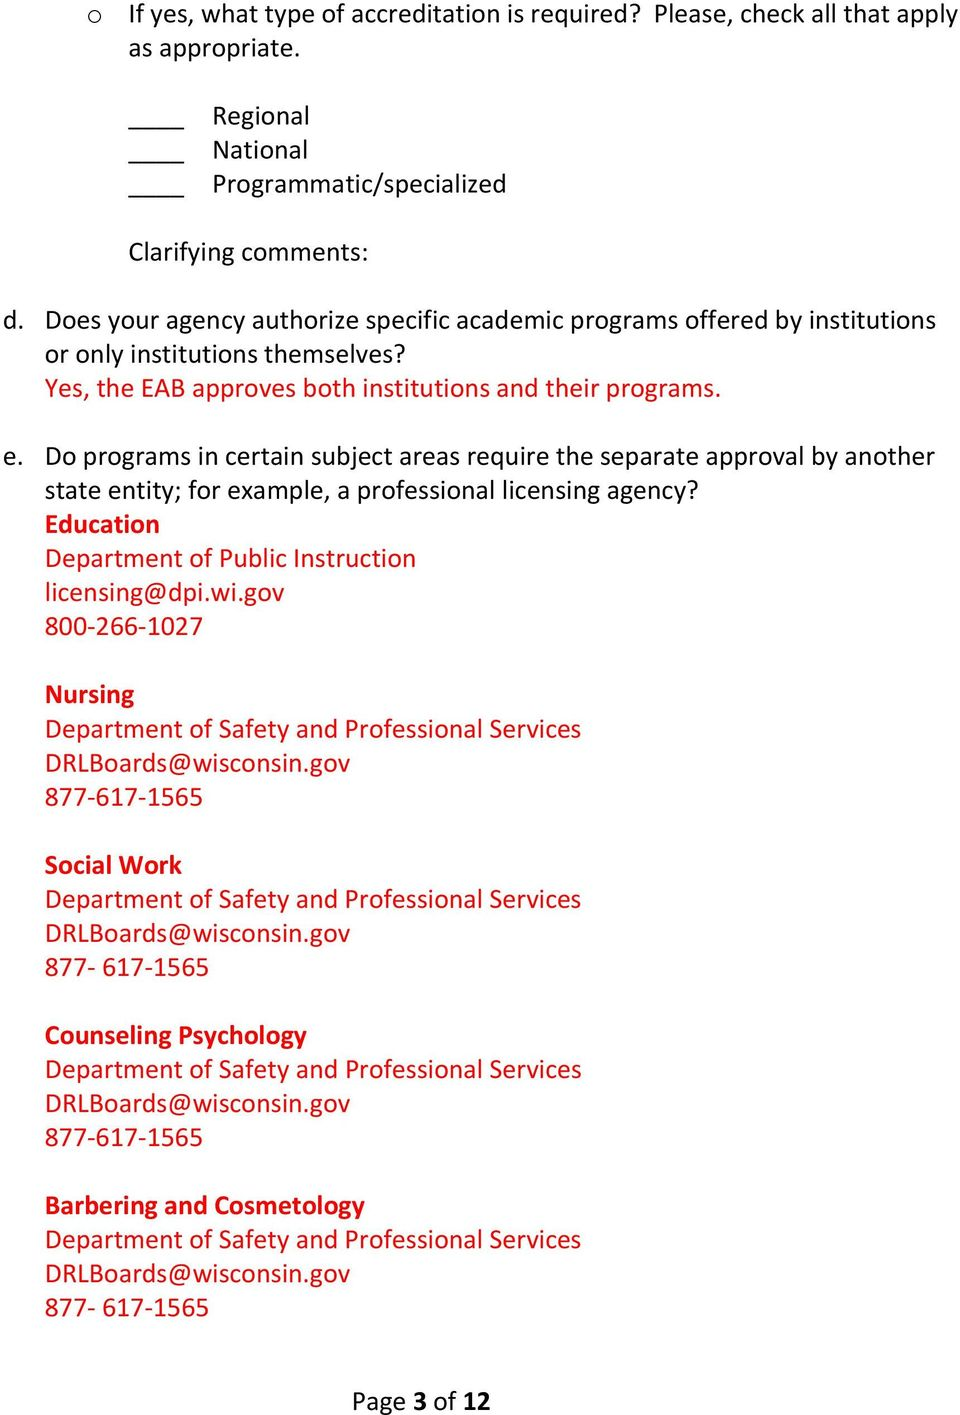 Do programs in certain subject areas require the separate approval by another state entity; for example, a professional licensing agency? Education Department of Public Instruction licensing@dpi.wi.